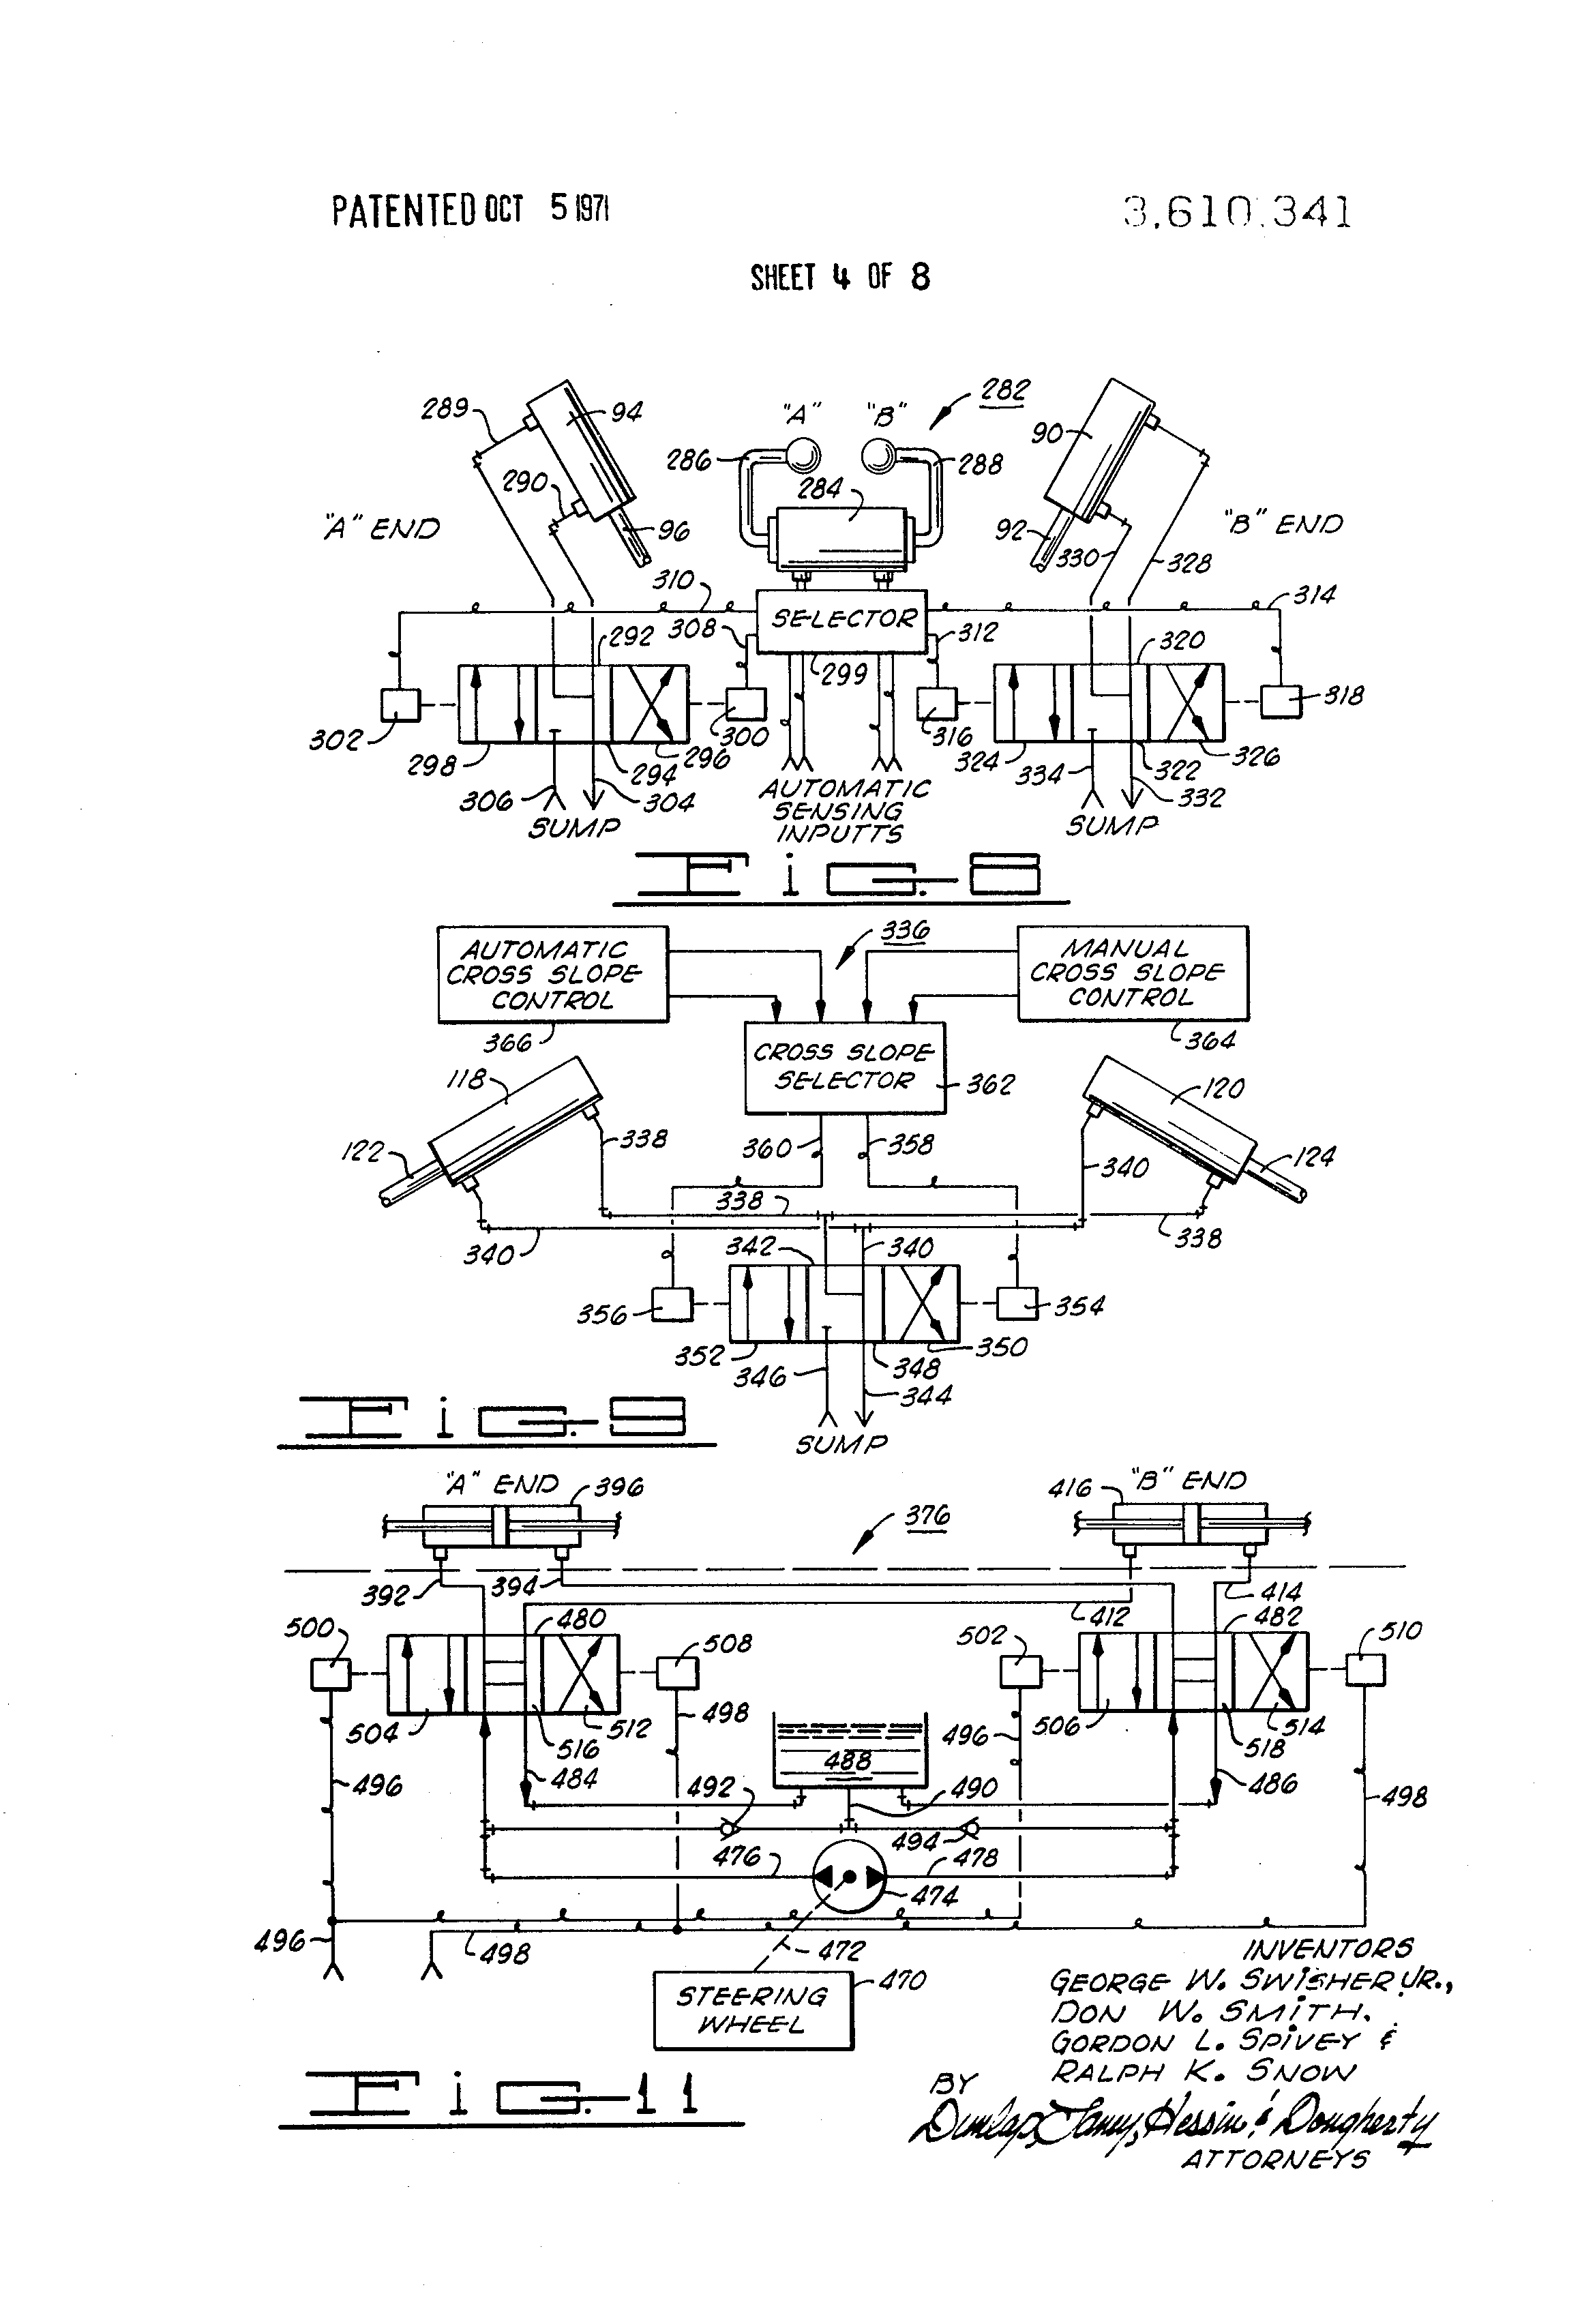 ih 544 wiring diagrams wiring diagrams International H Wiring Diagram